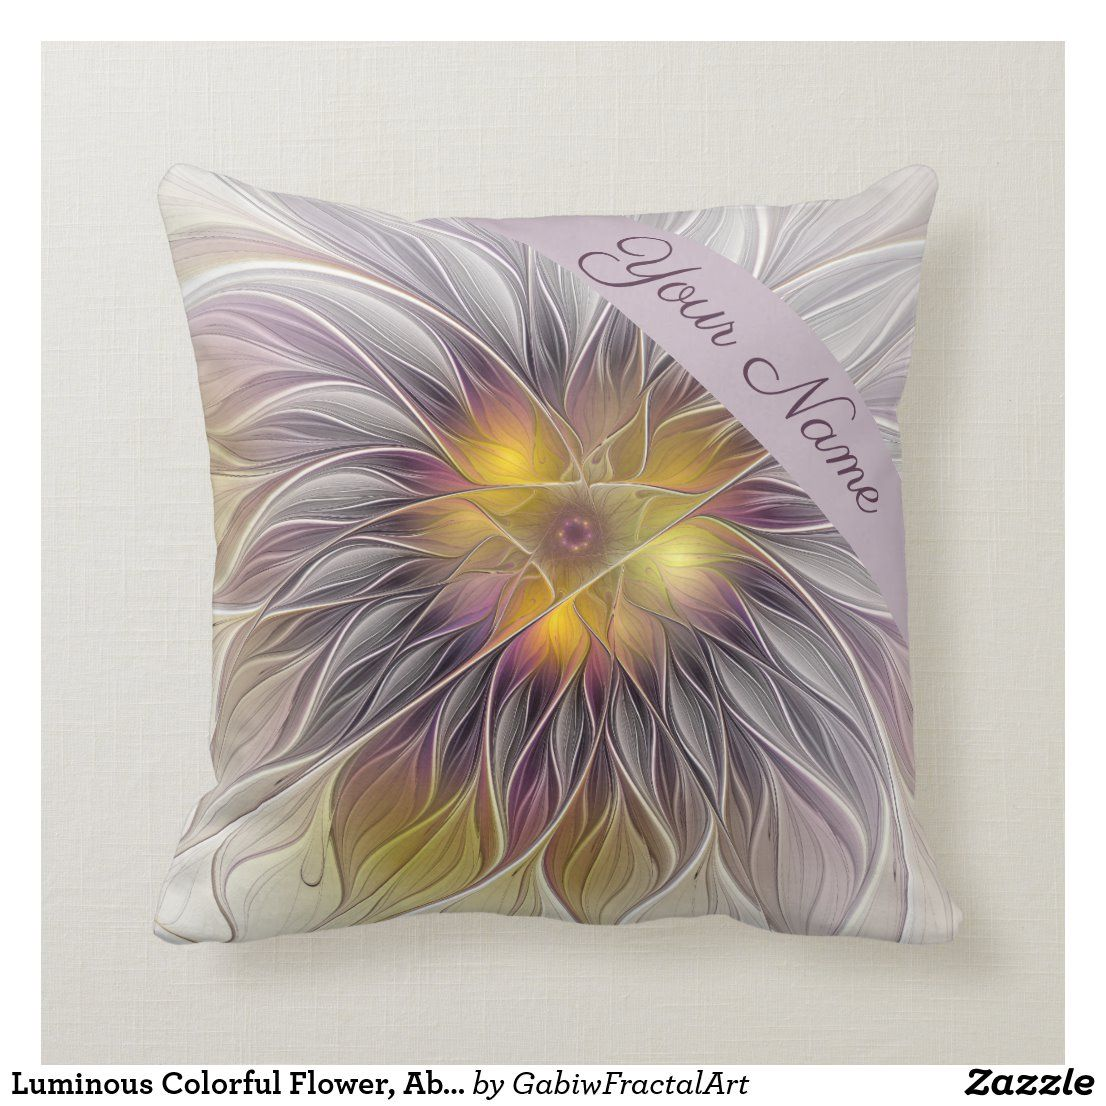 Luminous Colorful Flower Abstract Fractal Name Throw Pillow Zazzle Com In 2020 Flower Graphic Colorful Flowers Abstract